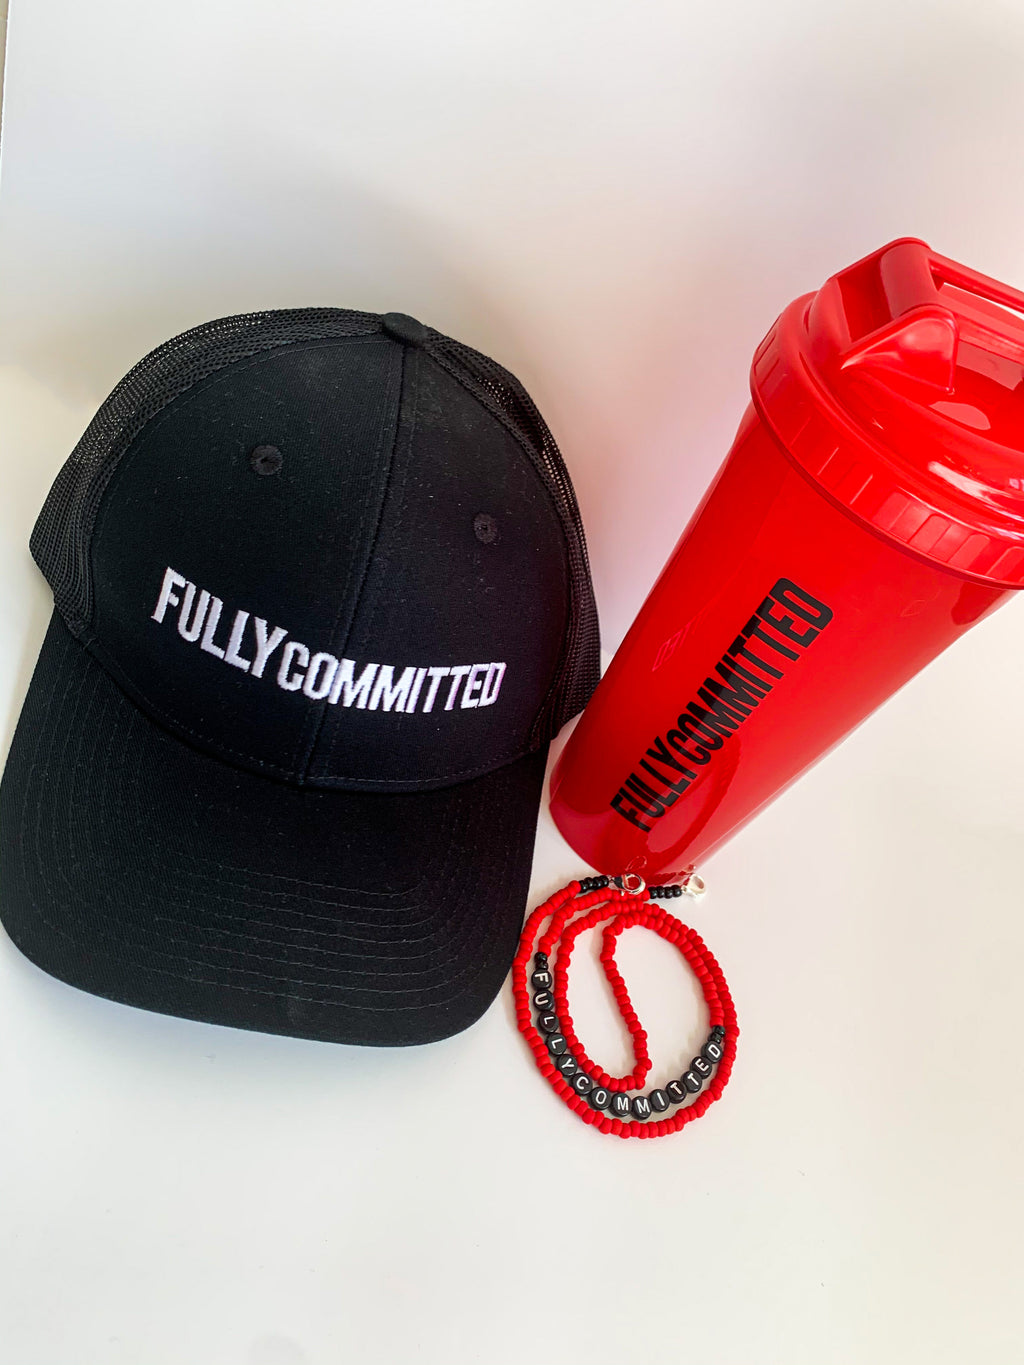 FullyCommitted Bundle